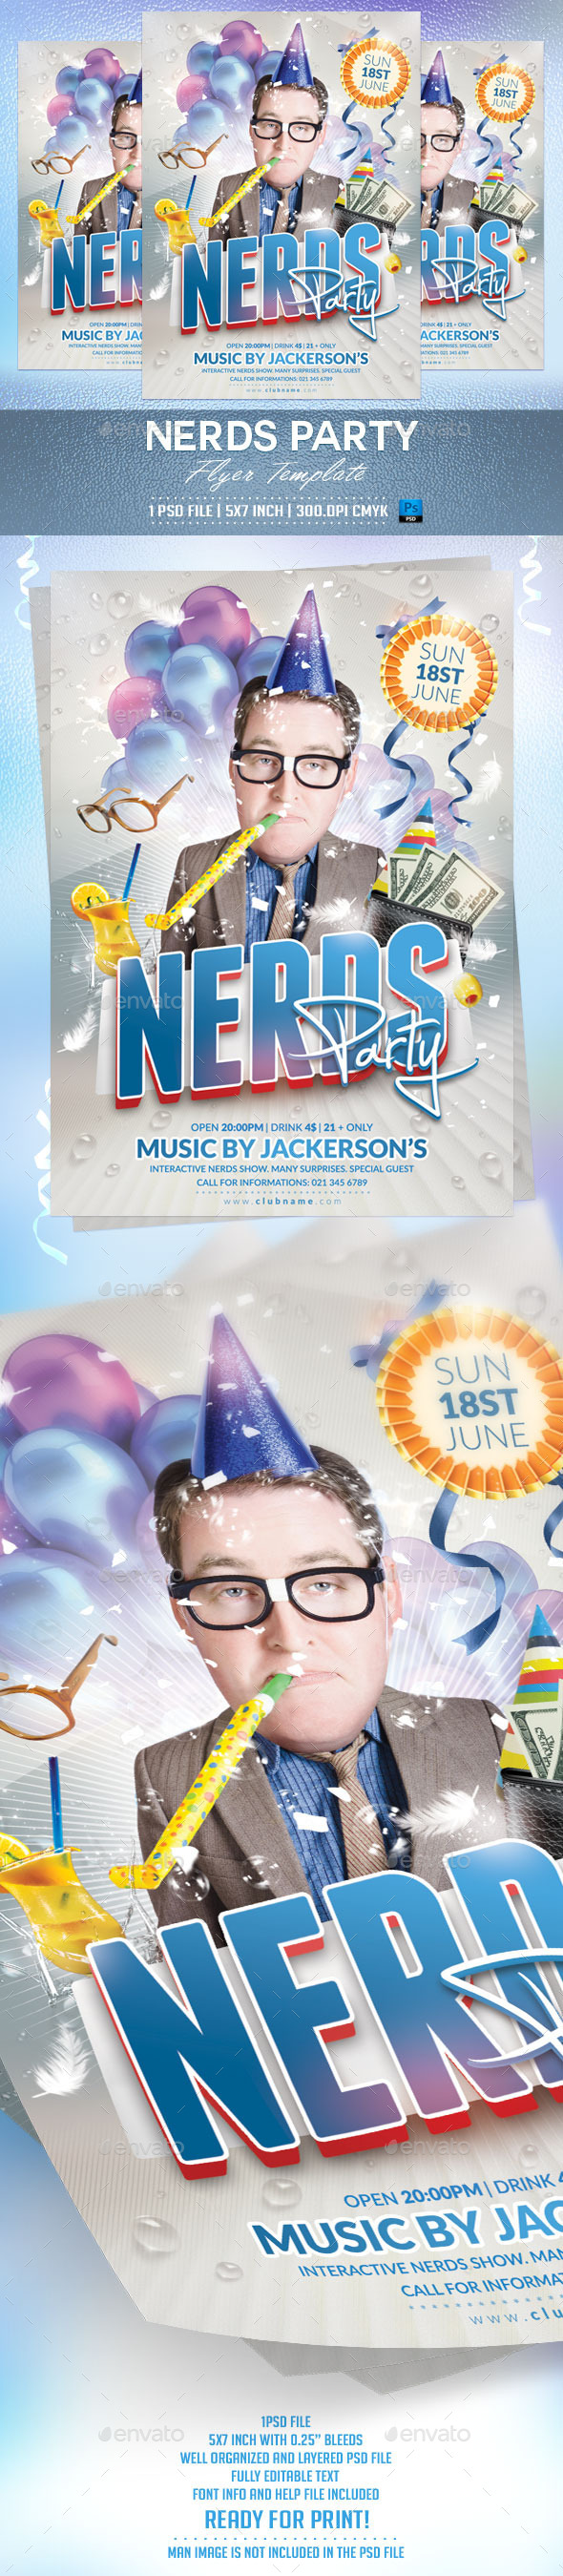 Nerds Party Flyer Template - Clubs & Parties Events